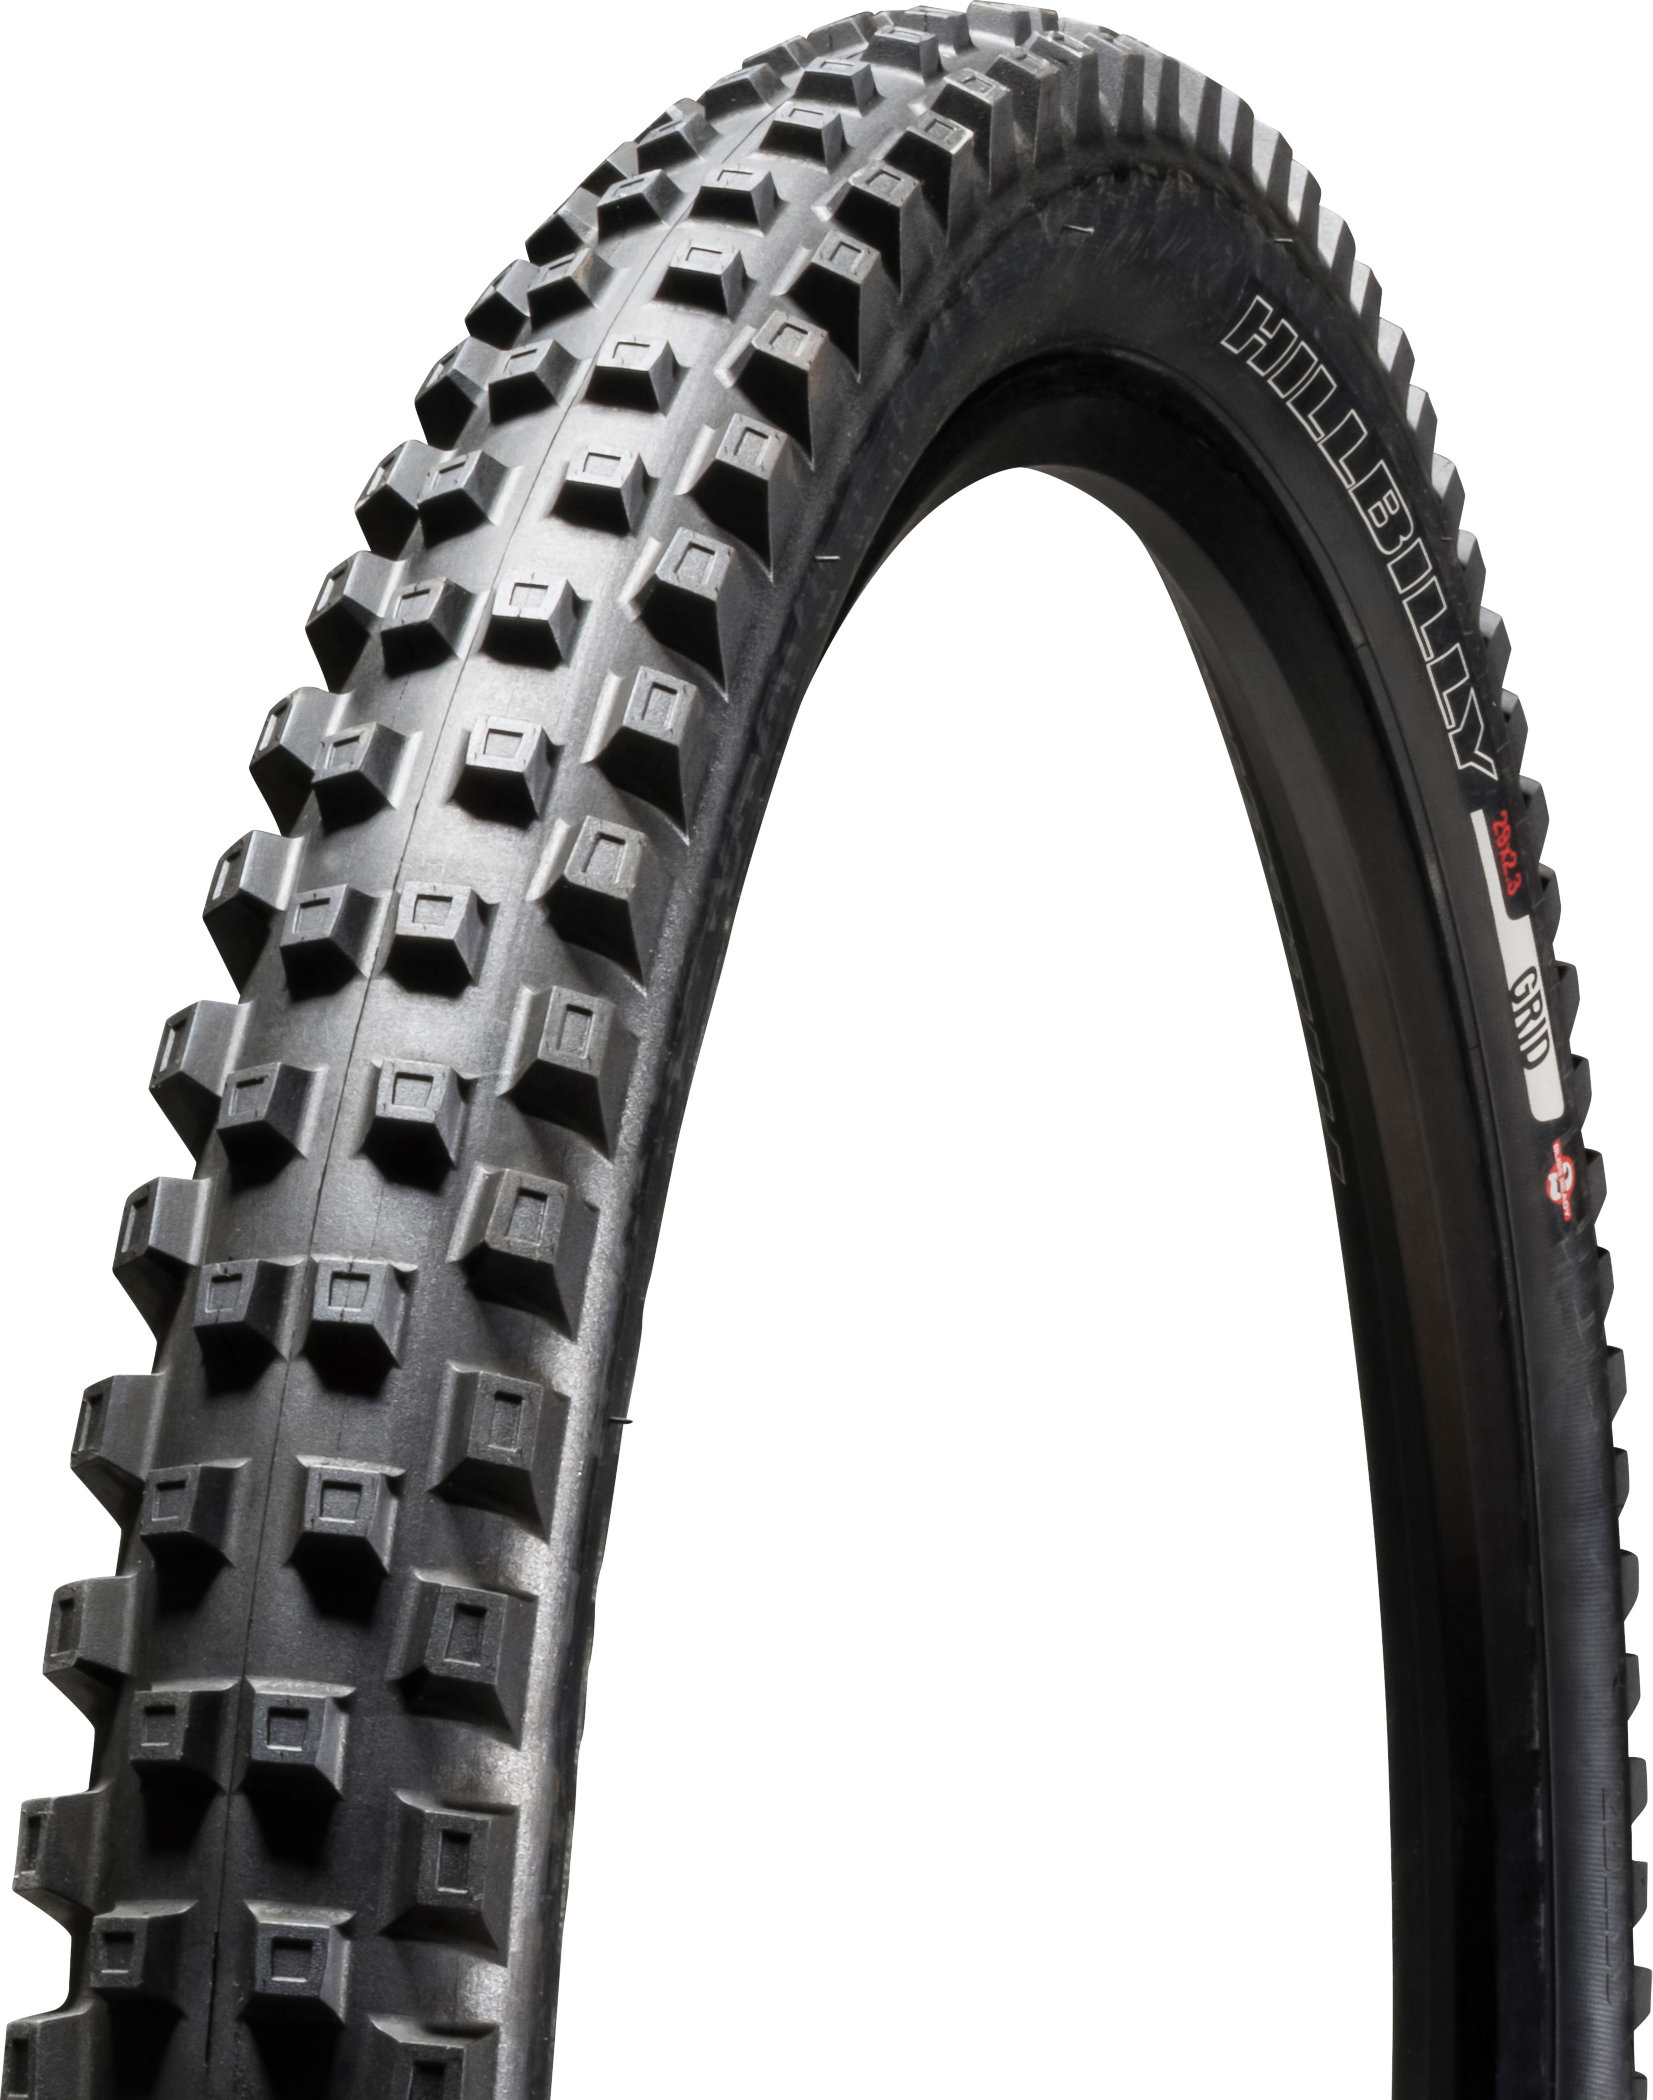 SPECIALIZED HILLBILLY GRID 2BR TIRE 29X2.3 - Alpha Bikes